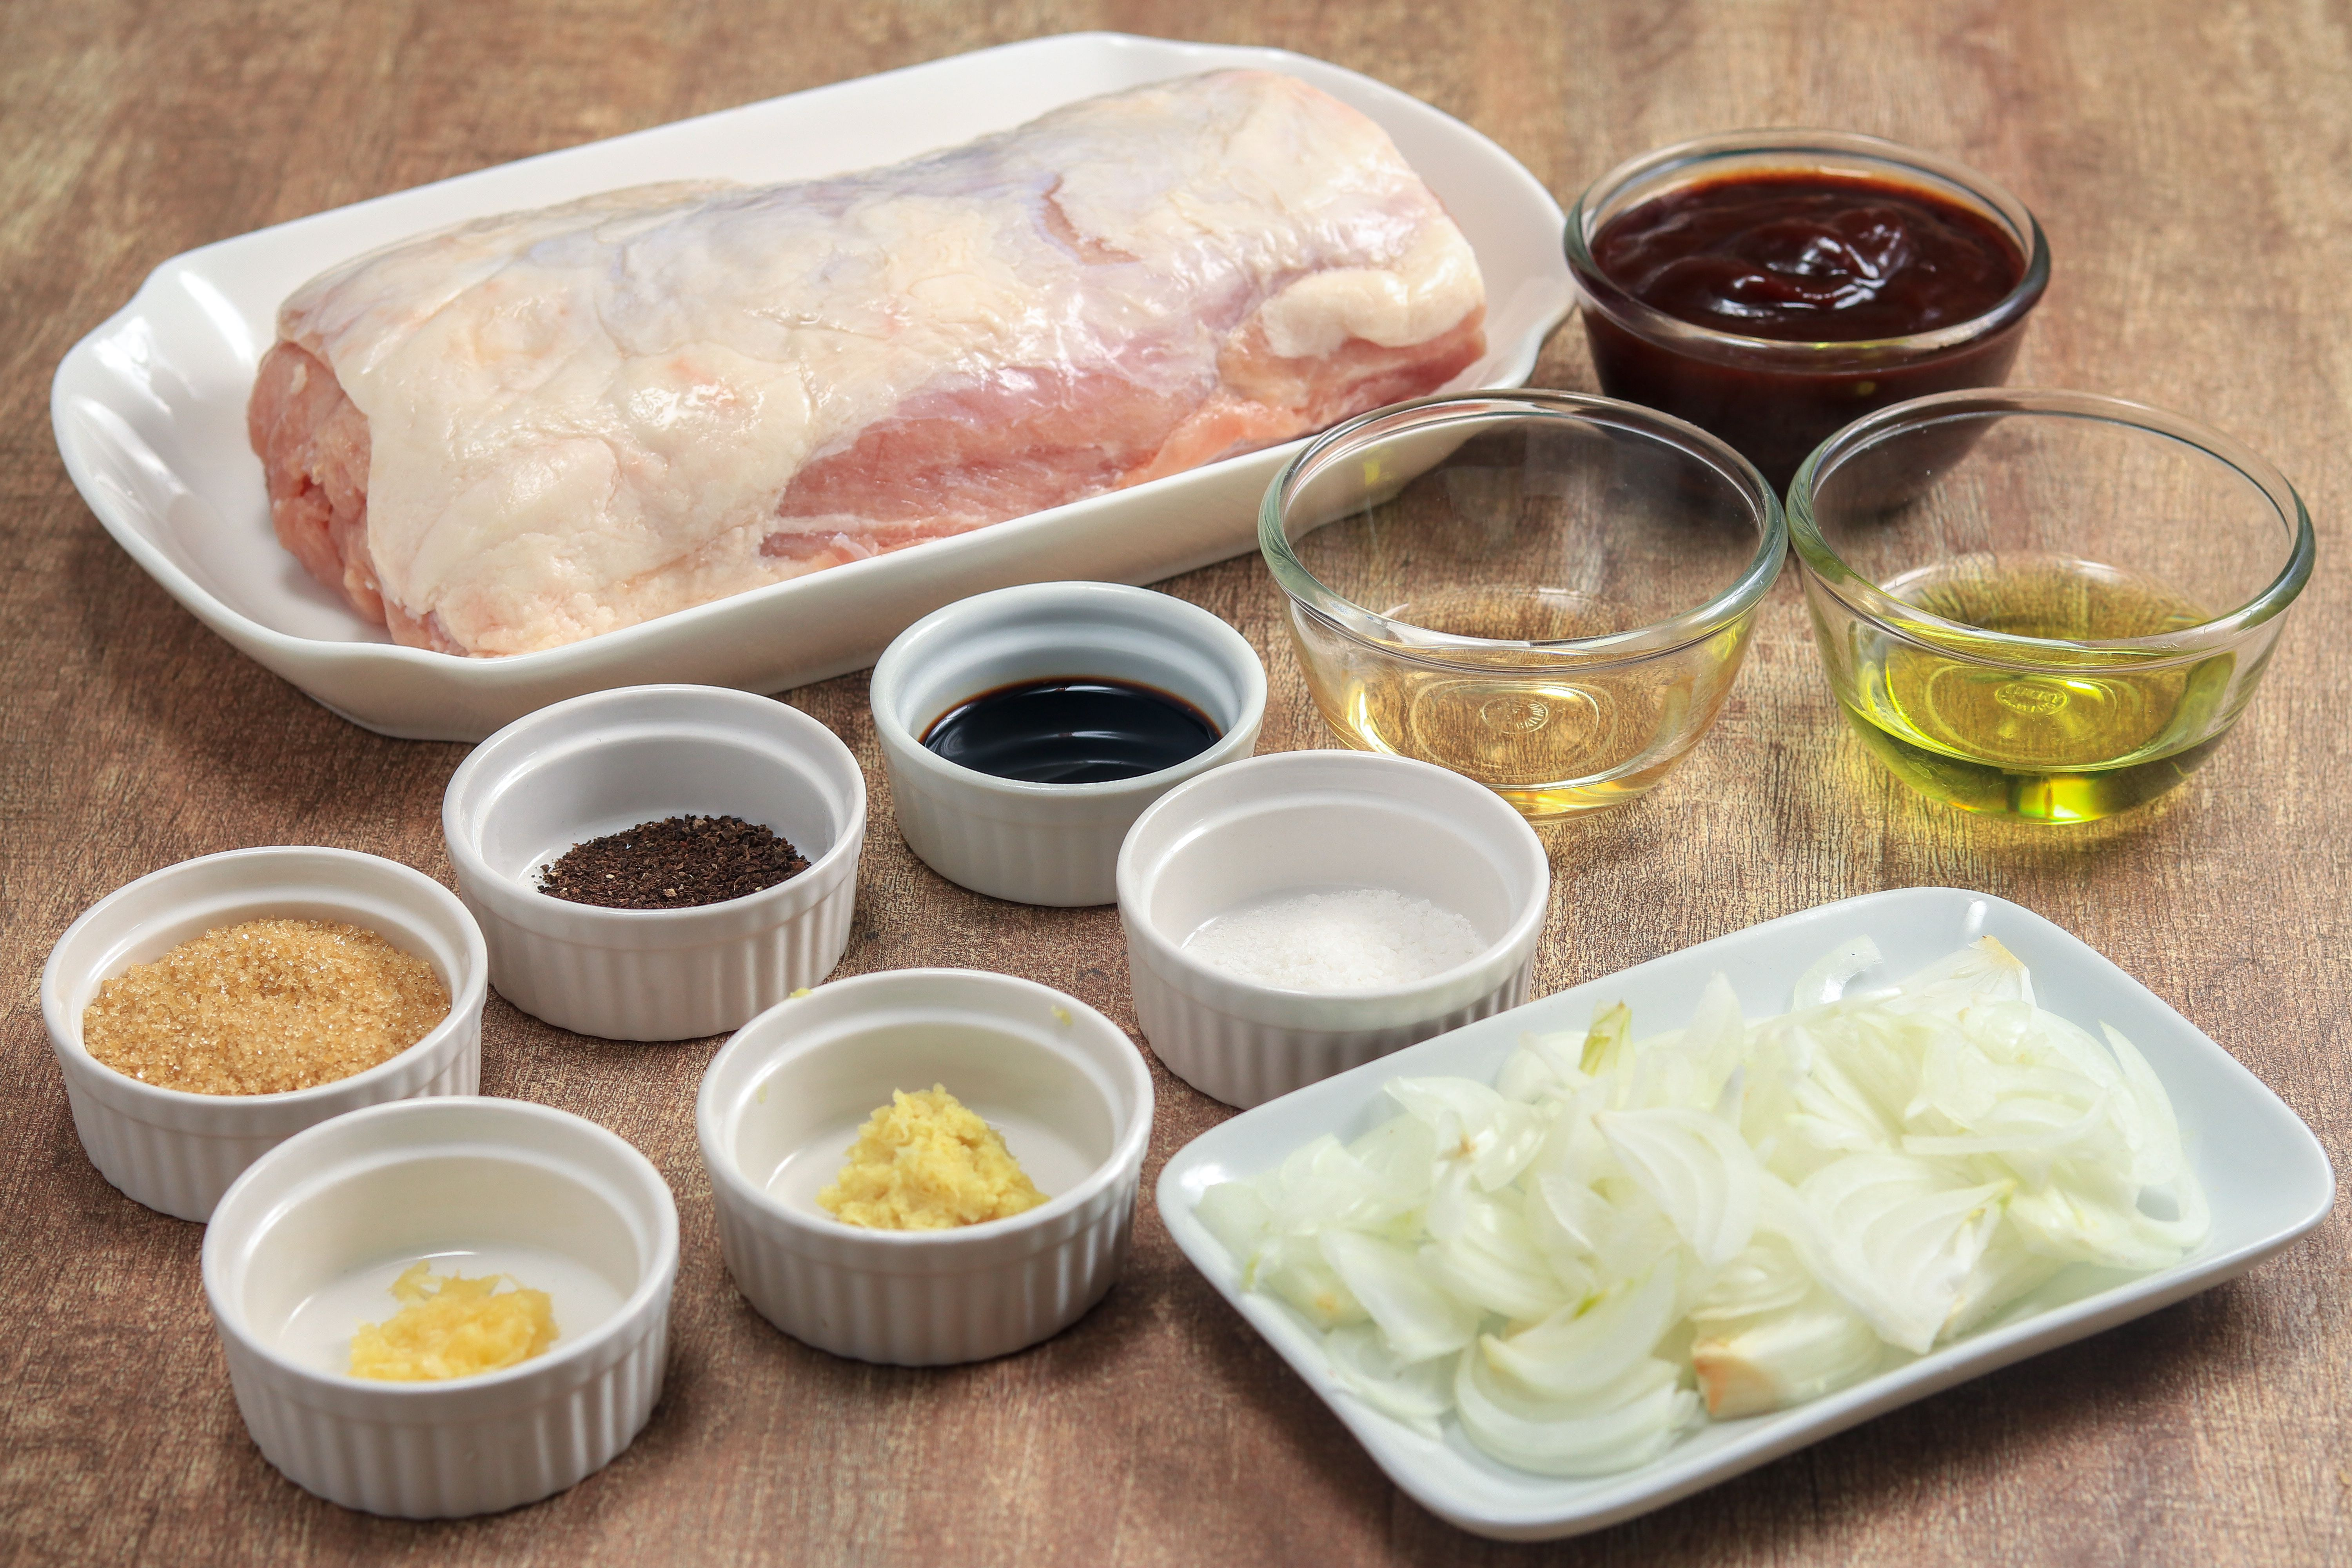 Slow Cooker Pork Loin Barbecue ingredients